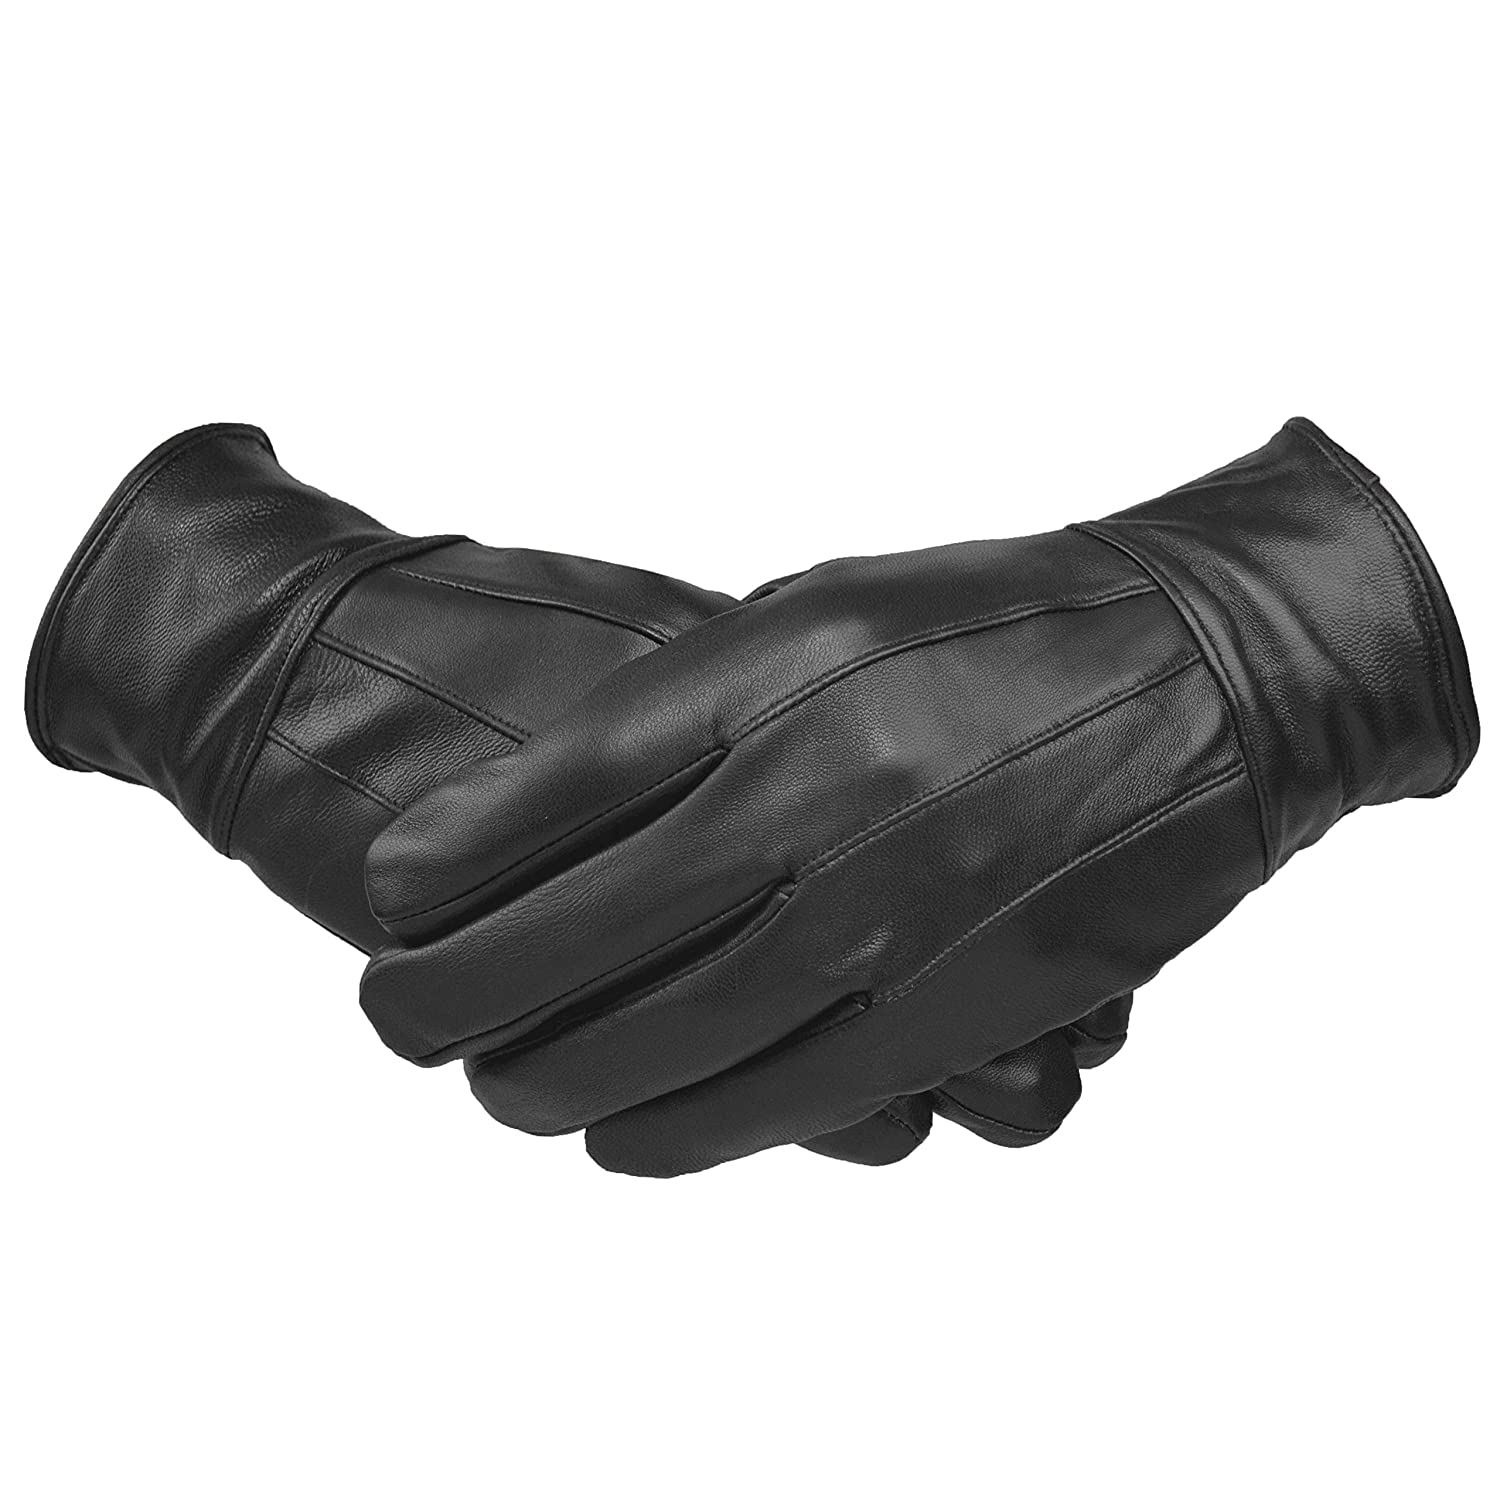 e7697dd6b6a Mens Designer Genuine Leather Touch Screen Thermal Winter Warm Driving  Gloves